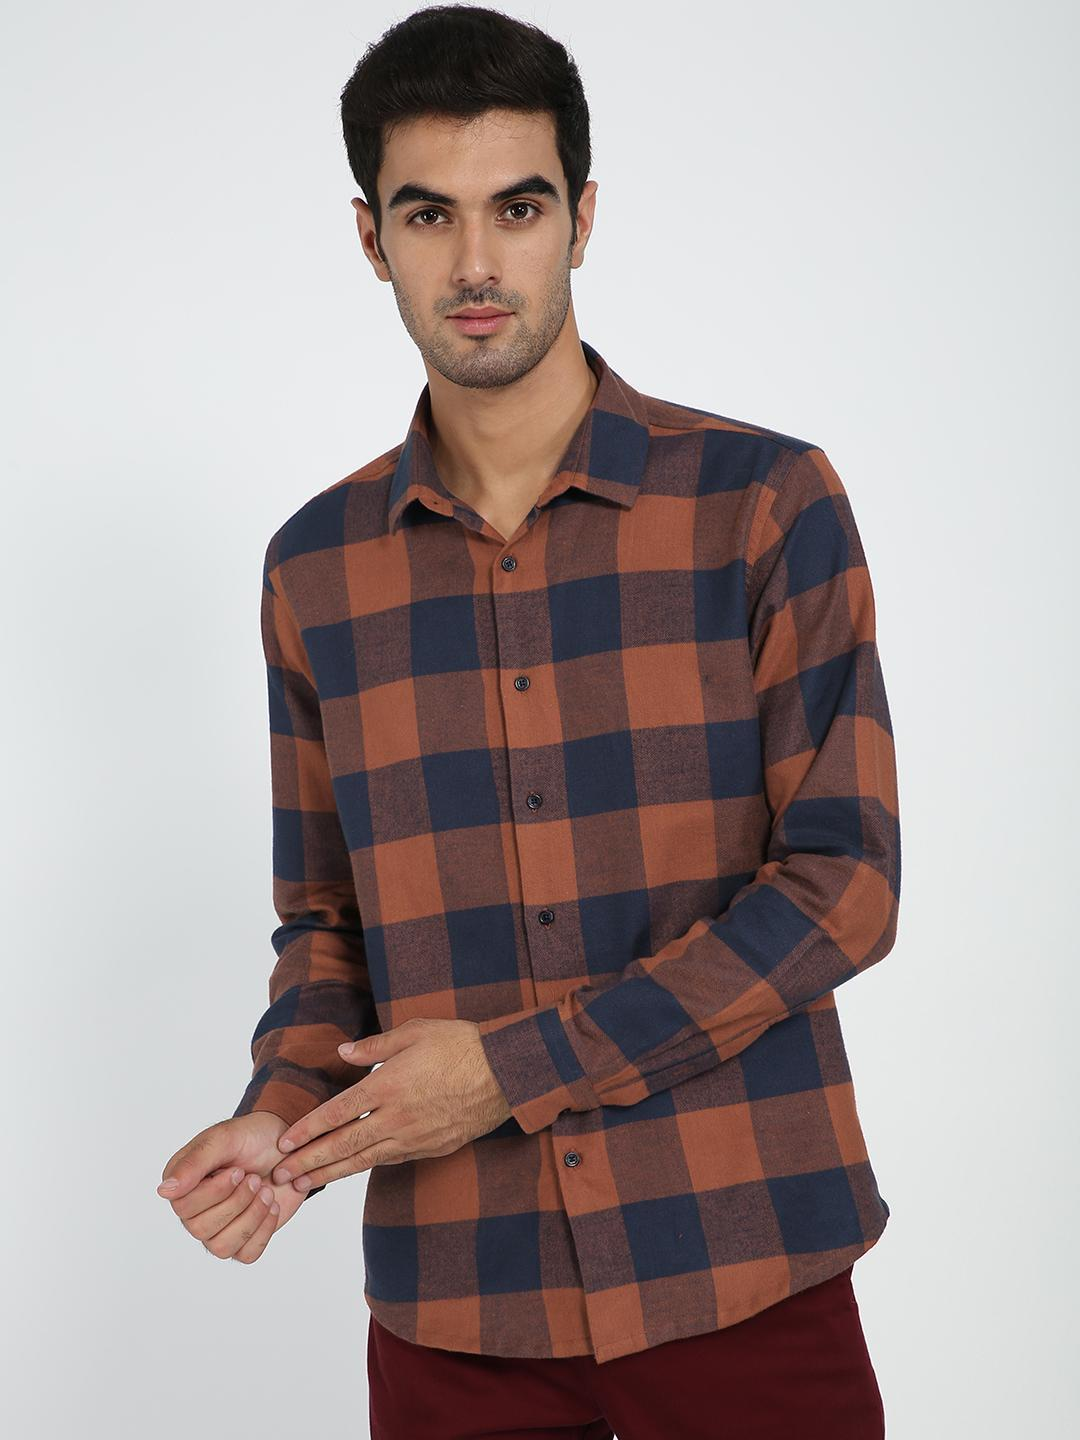 TRUE RUG Multi All Over Check Flannel Shirt 1